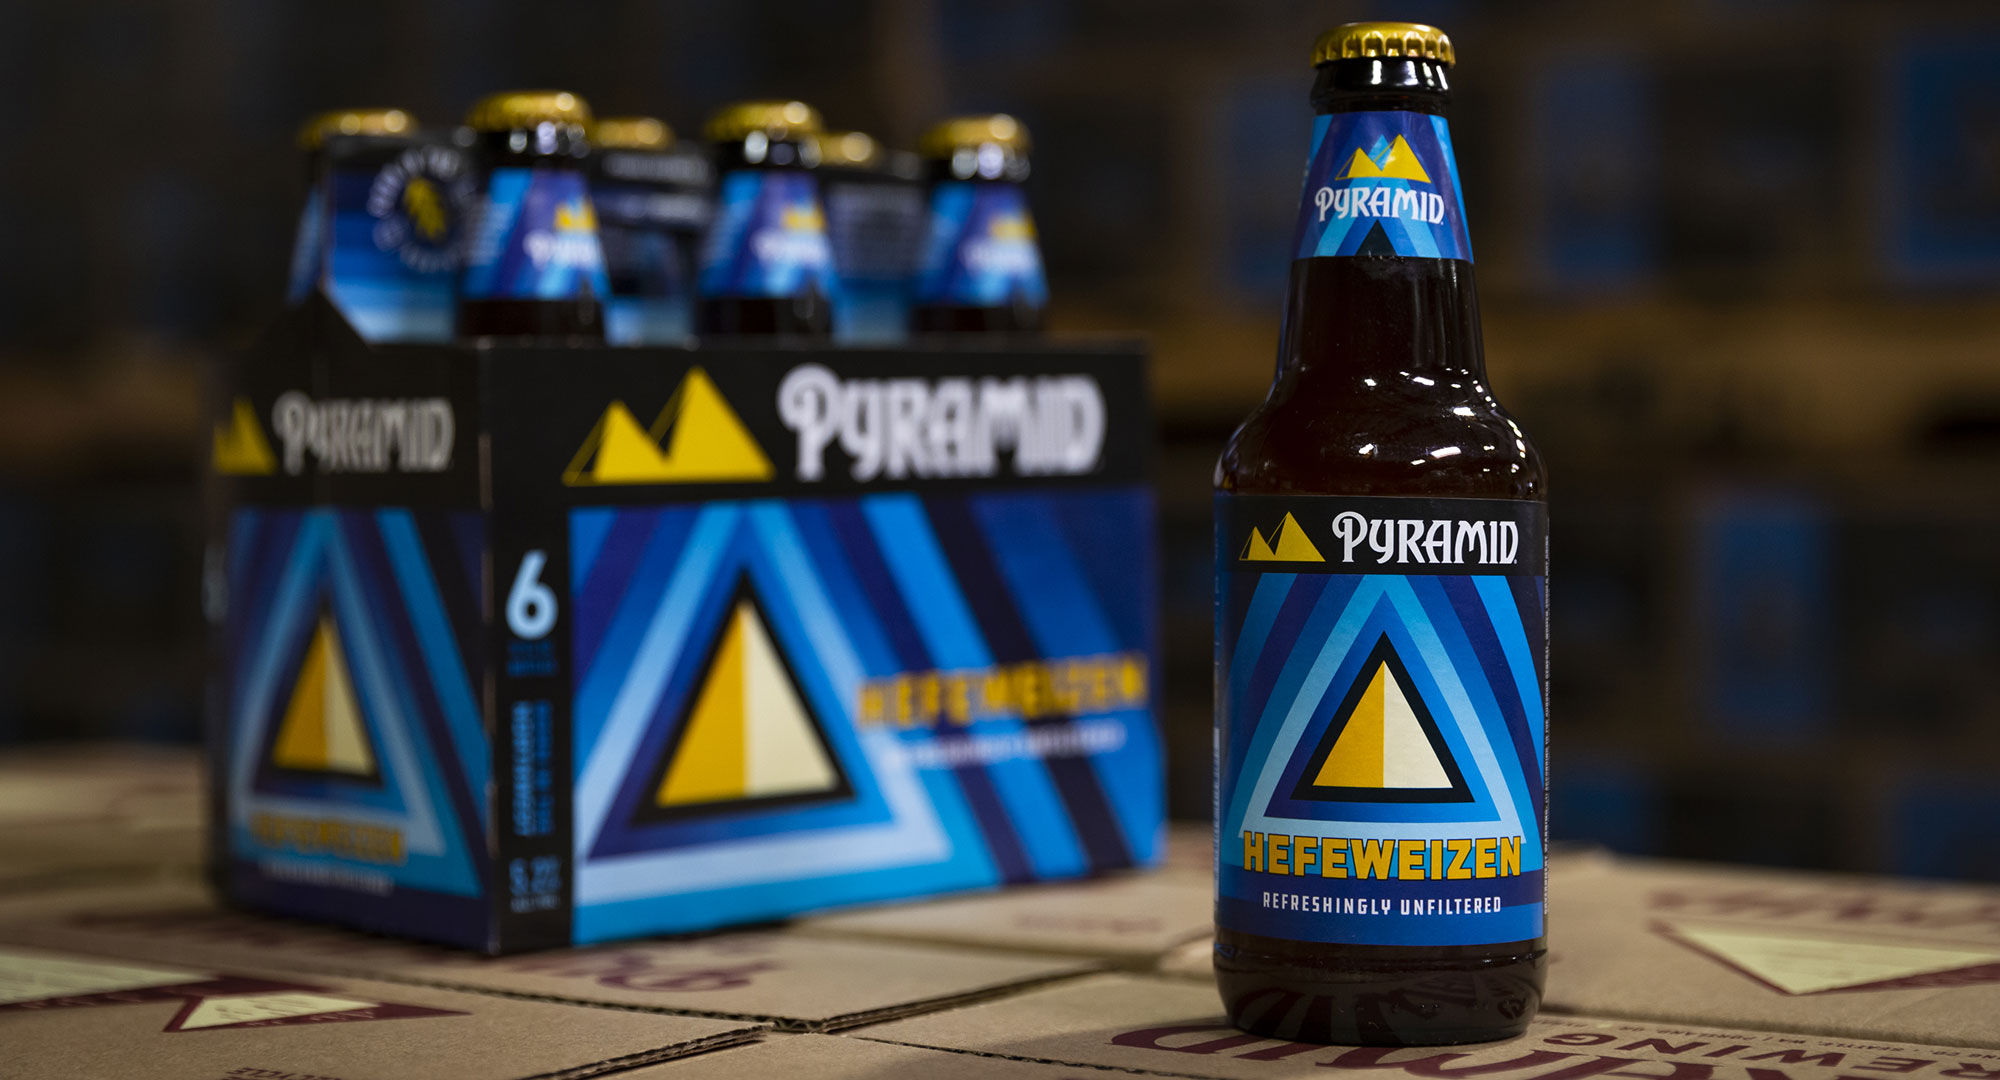 Hefeweizen 6-pack and bottle on Pyramid boxes